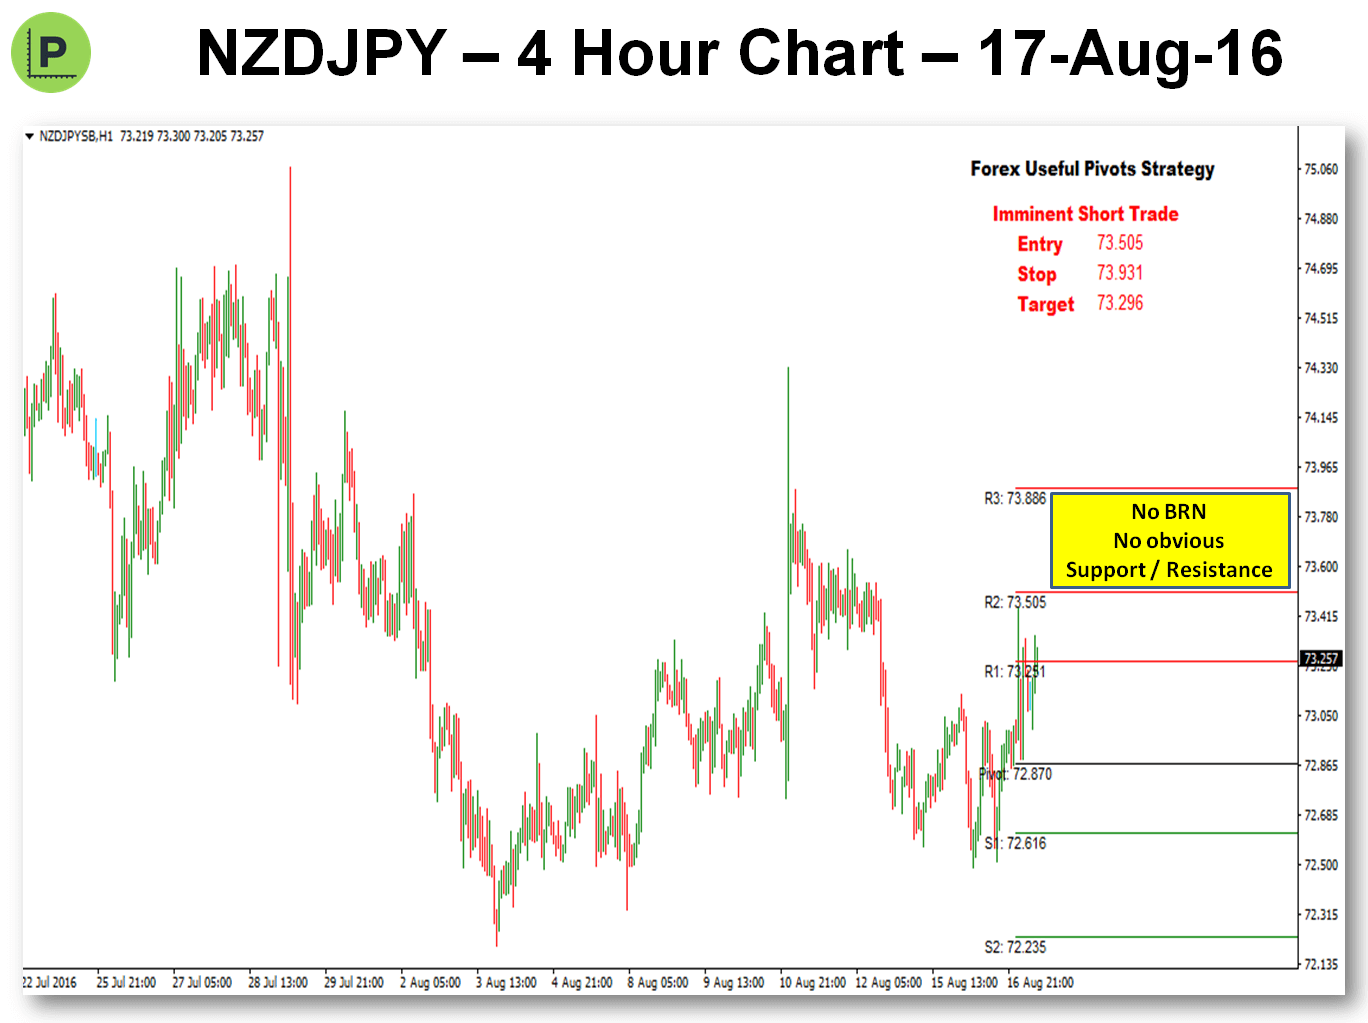 Potential Pivot Trade - 17-Aug-16 NZDJPY Chart